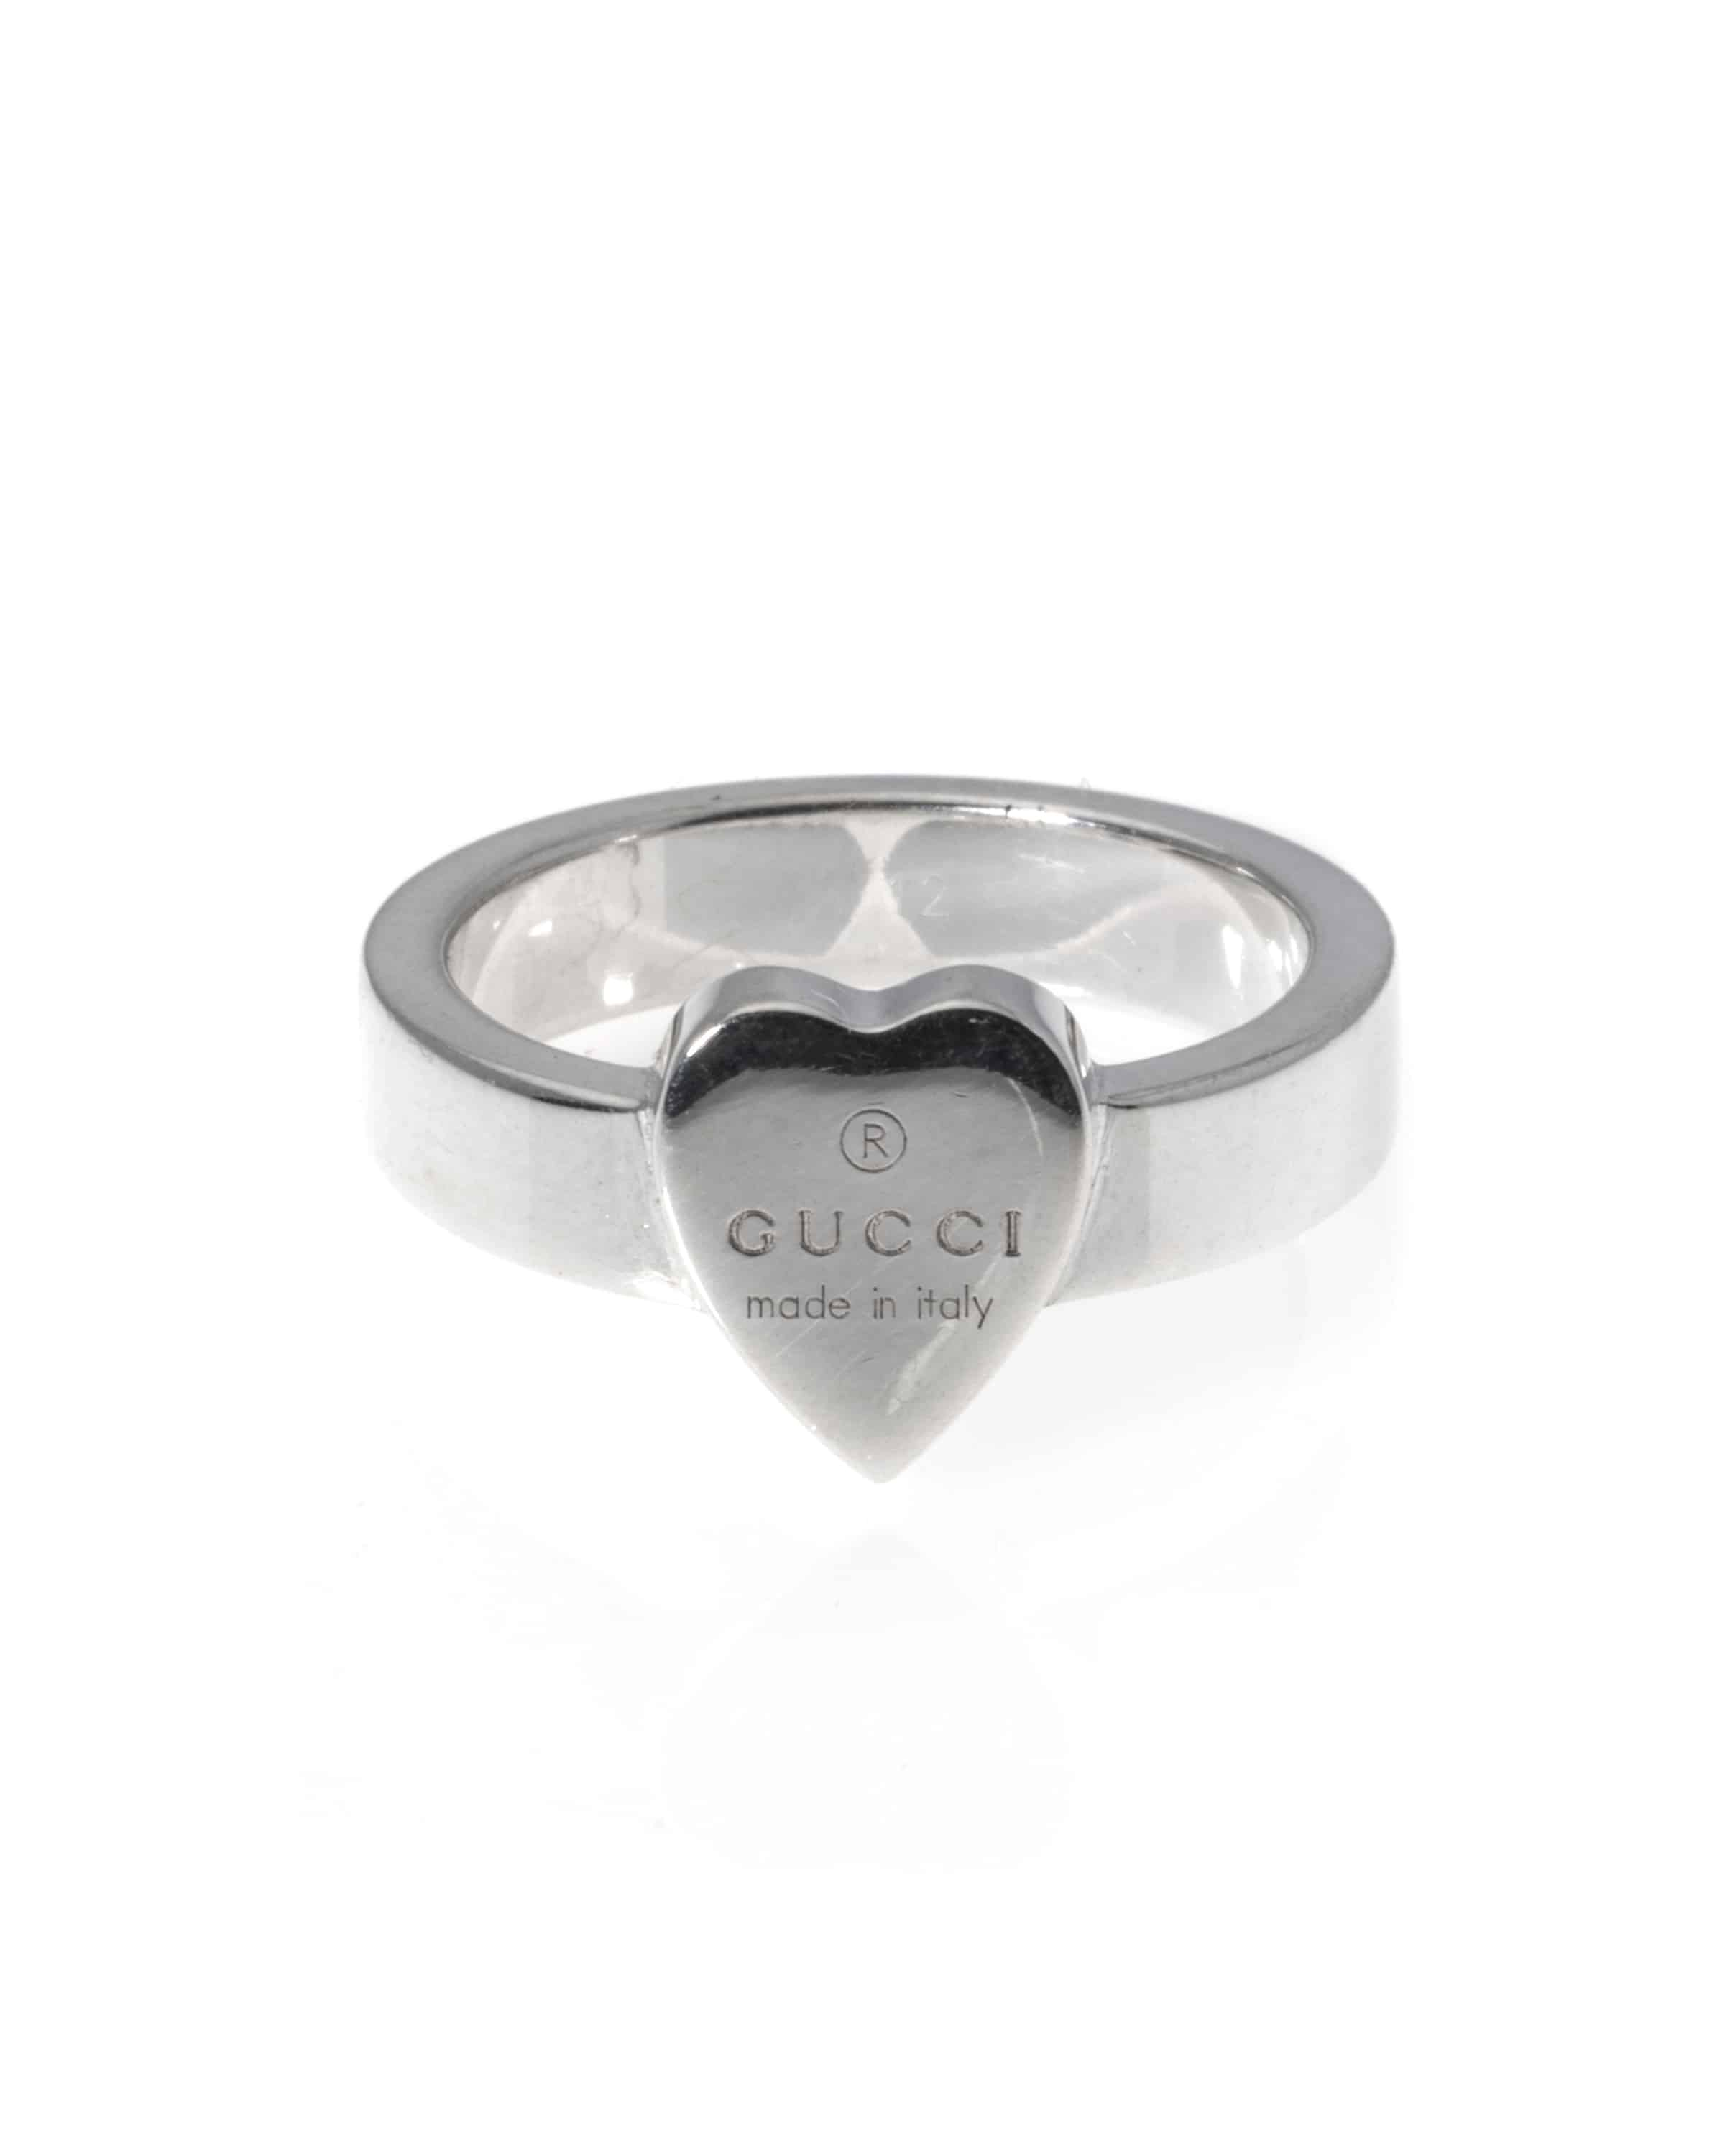 2af0648e9 Gucci Trademark Sterling Silver Heart Ring Size 6,5.5 ...